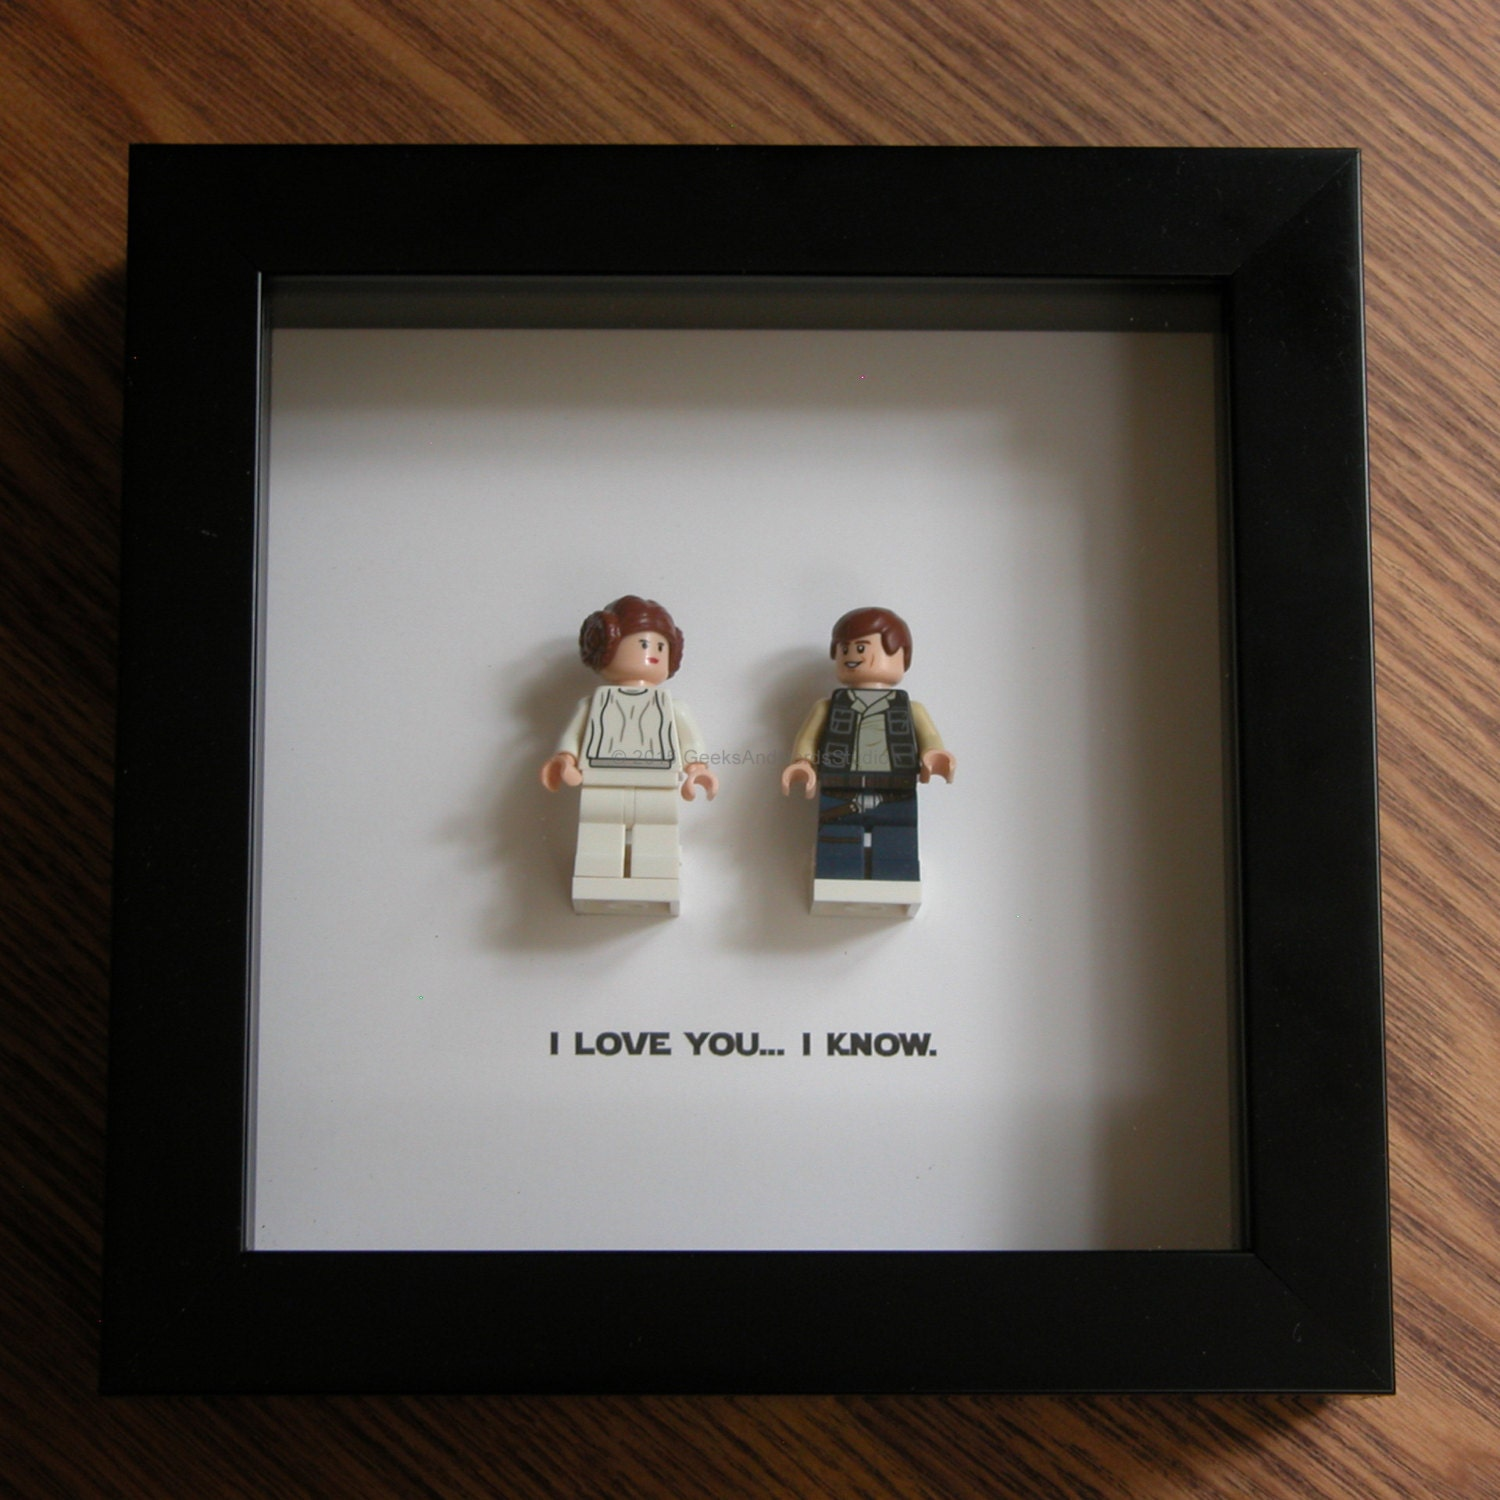 lego star wars framed art han solo princess leia lego minifigure display wedding gift wall decor picture frames displays